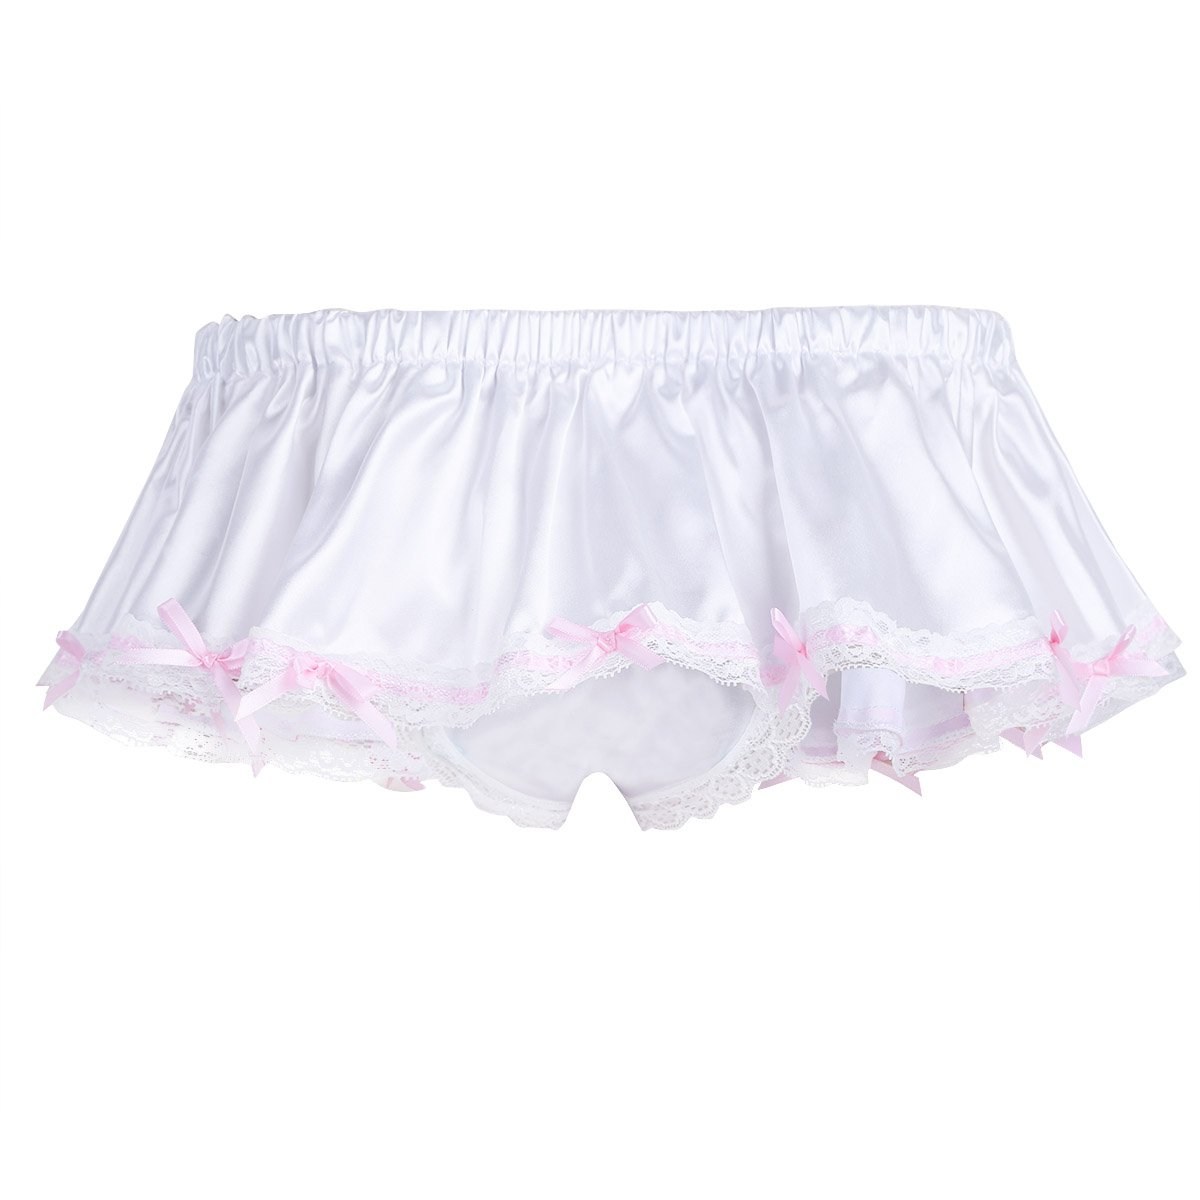 5124a8330203 MSemis Men's Sissy Skirted Panties Satin Frilly Lace Briefs Thongs Underwear  Crossdress